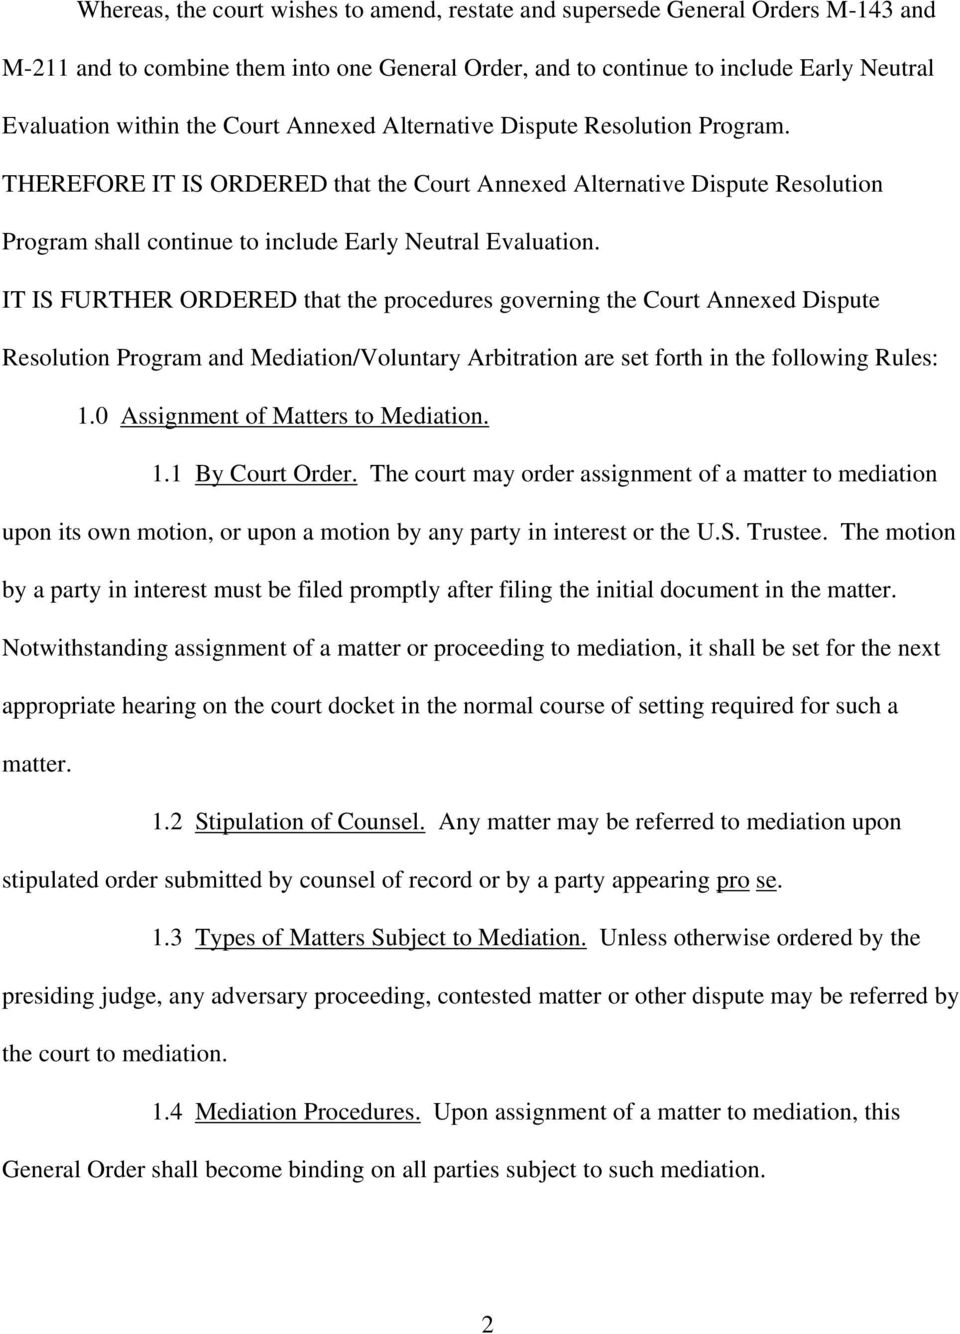 IT IS FURTHER ORDERED that the procedures governing the Court Annexed Dispute Resolution Program and Mediation/Voluntary Arbitration are set forth in the following Rules: 1.